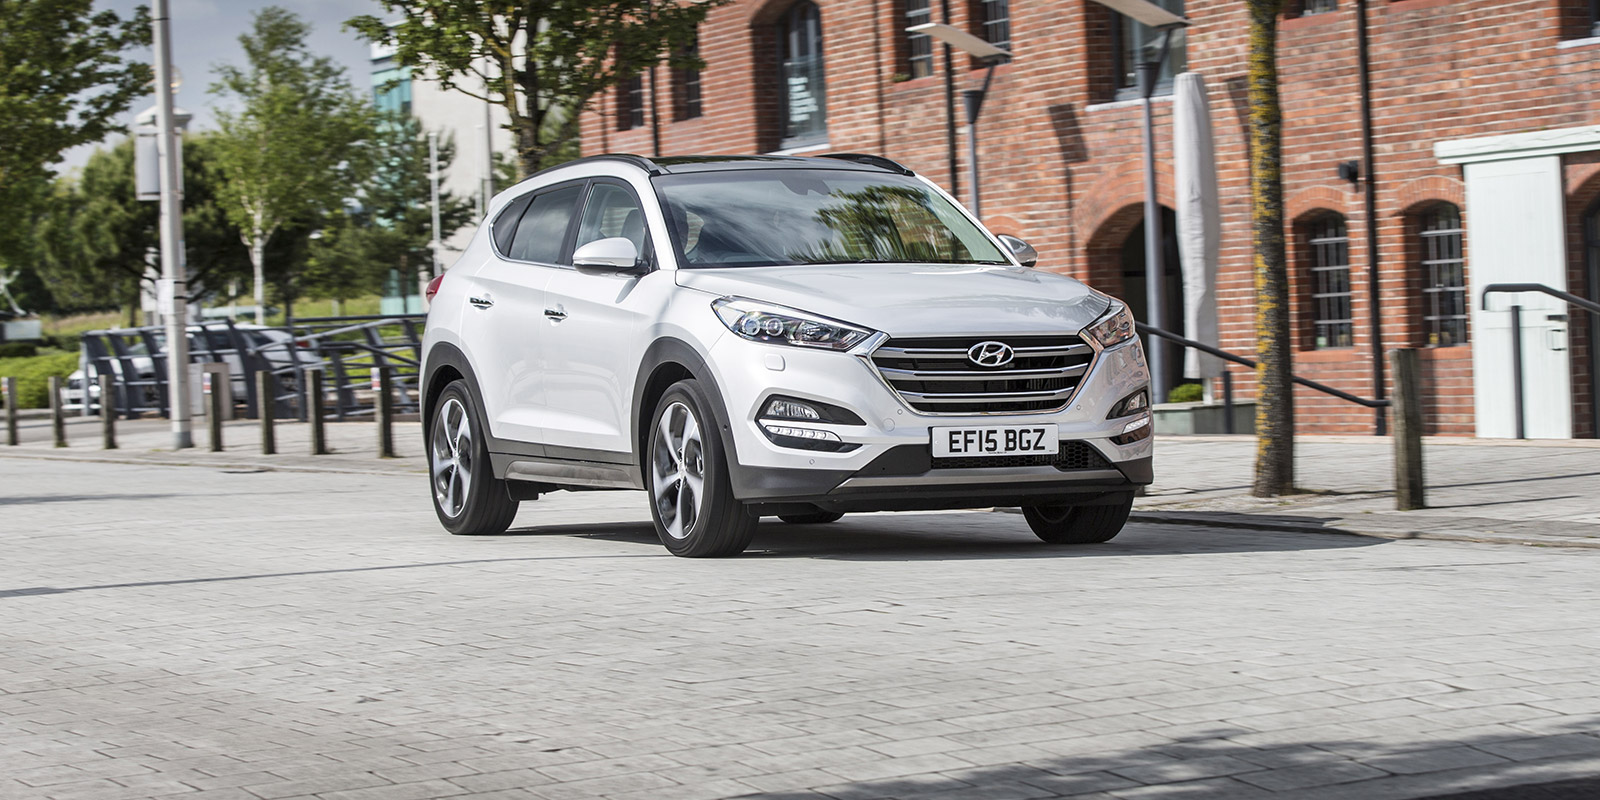 Tucson Dimensions 2017 >> Hyundai Tucson Sizes And Dimensions Guide Carwow